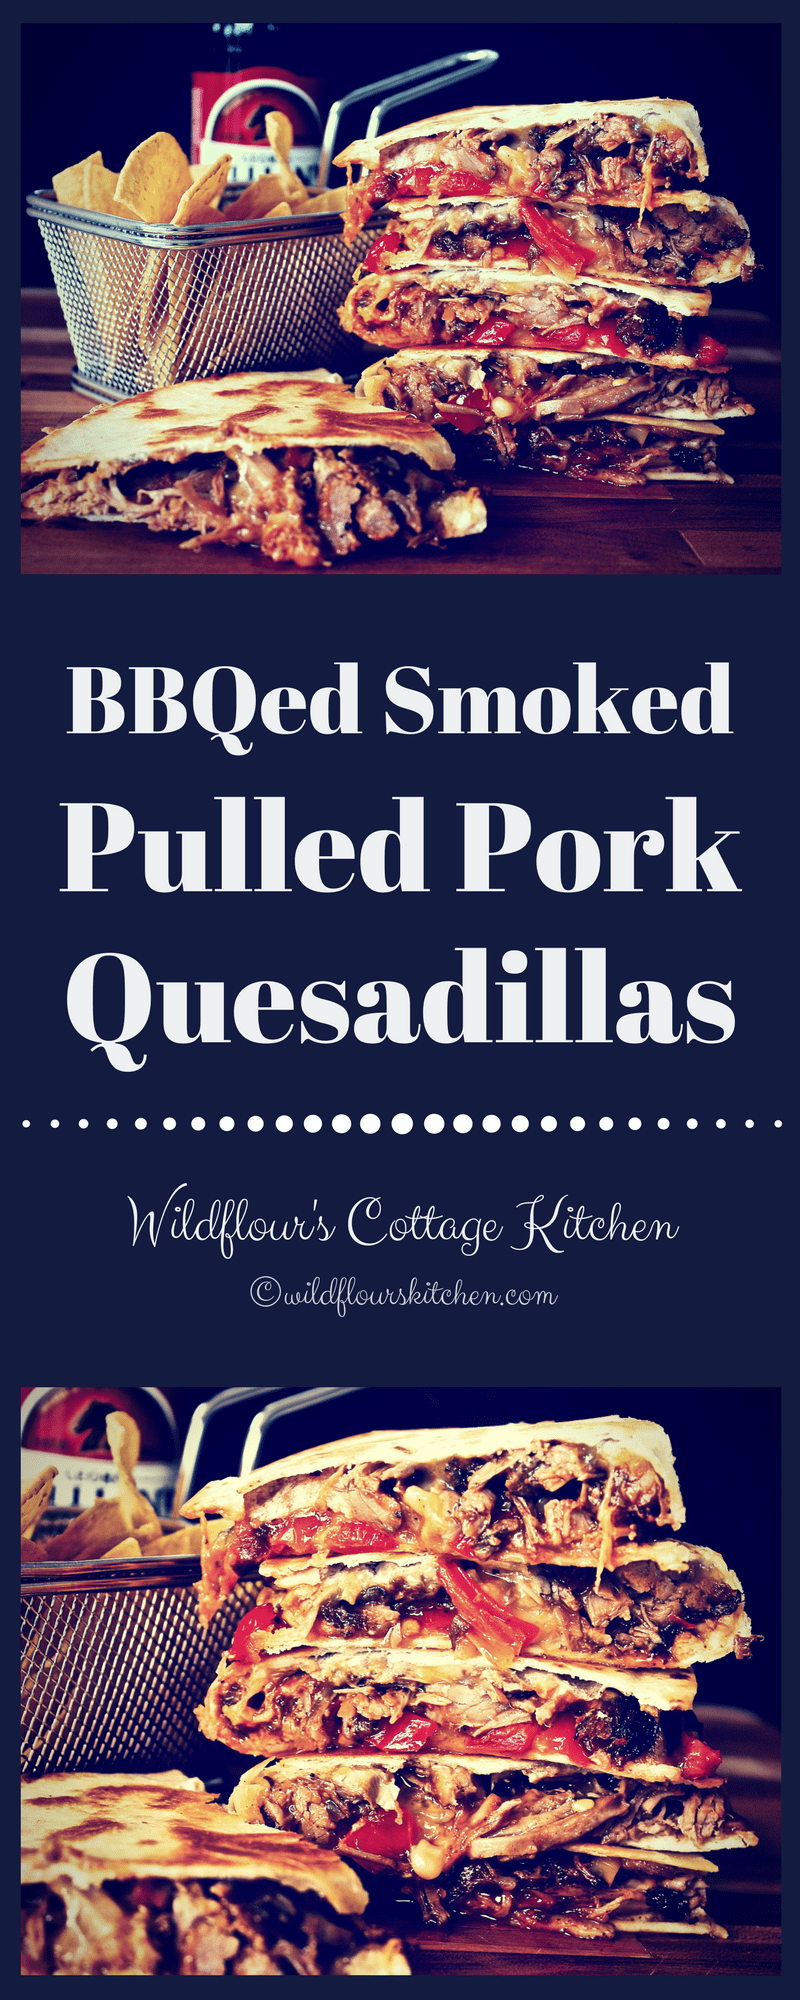 Barbecued Smoked Pulled Pork Quesadillas Wildflour S